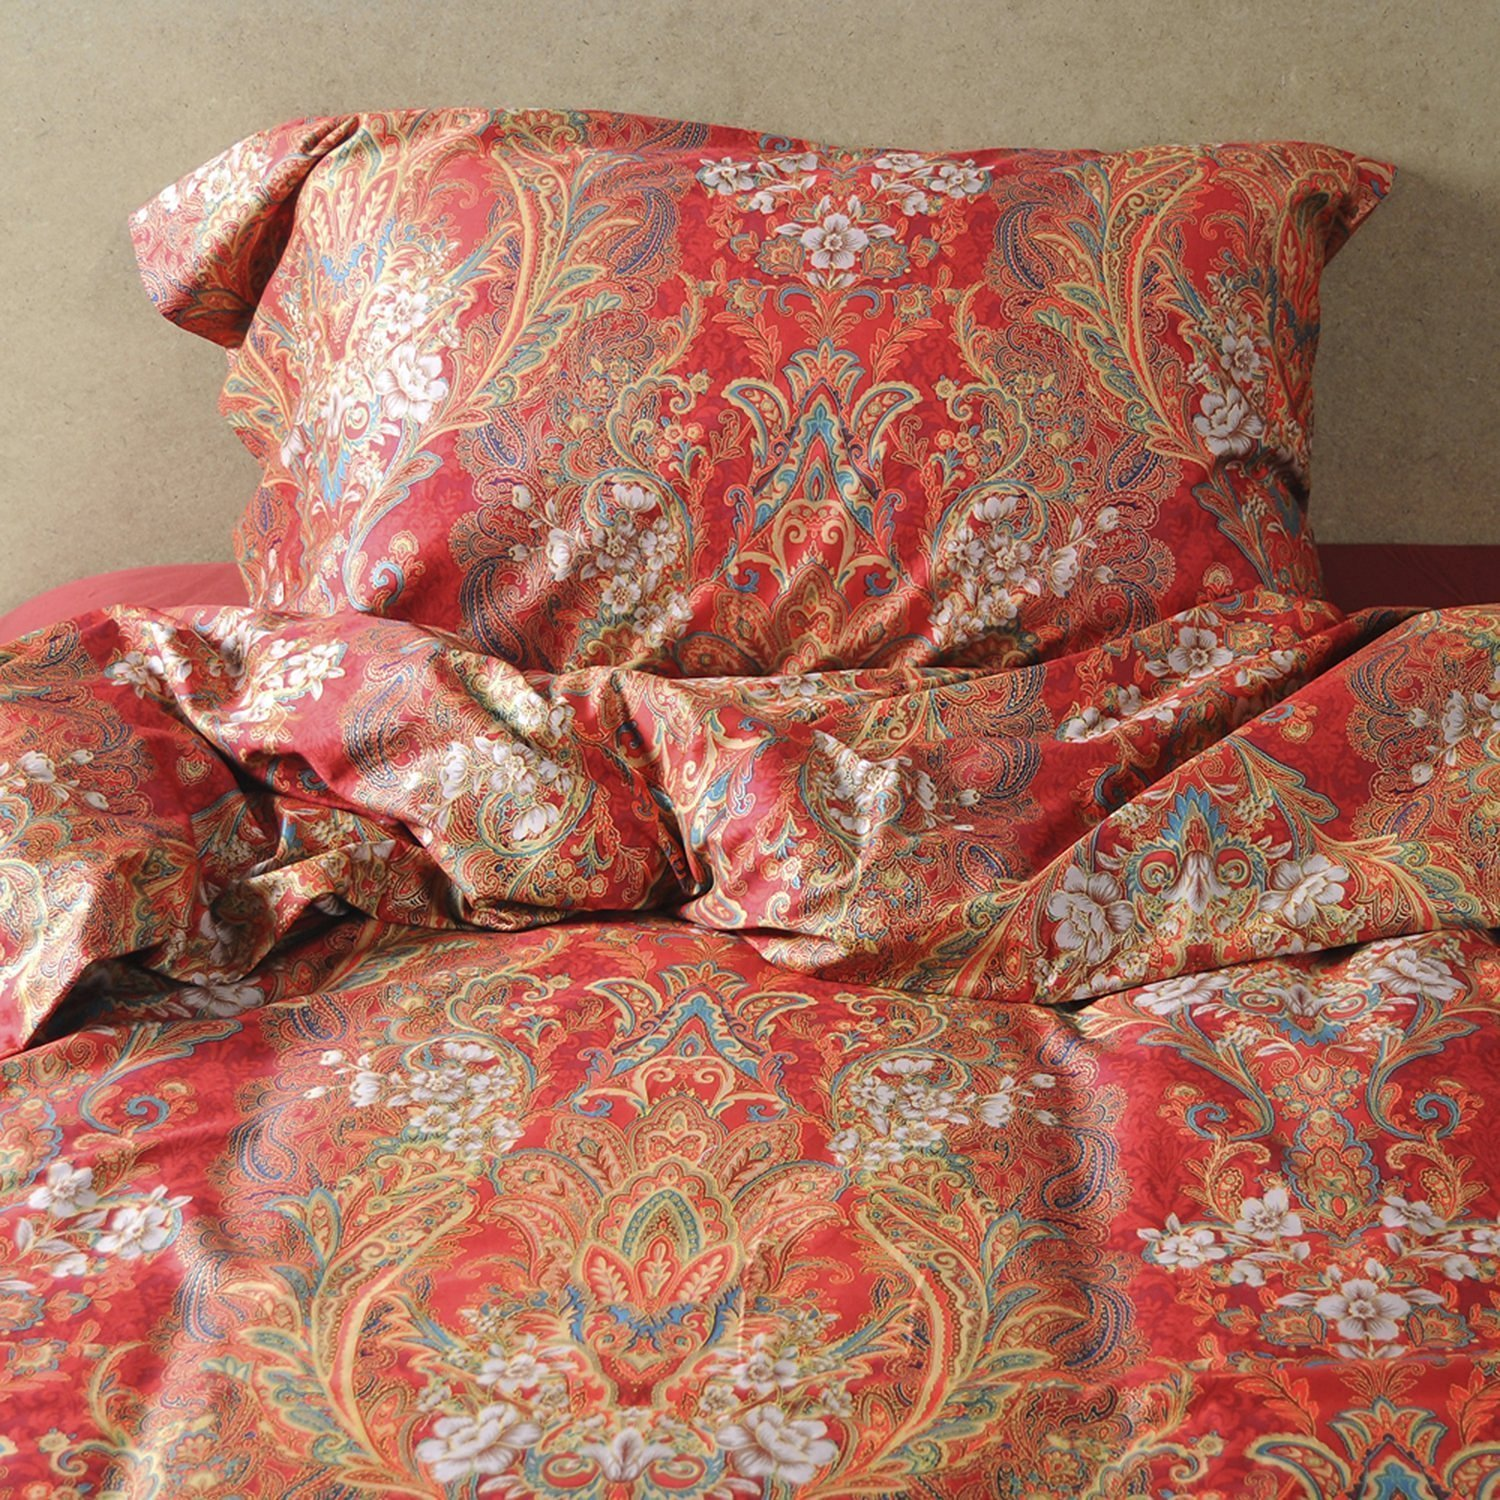 Boho Paisley Print Luxury Duvet Quilt Cover And Shams 3pc